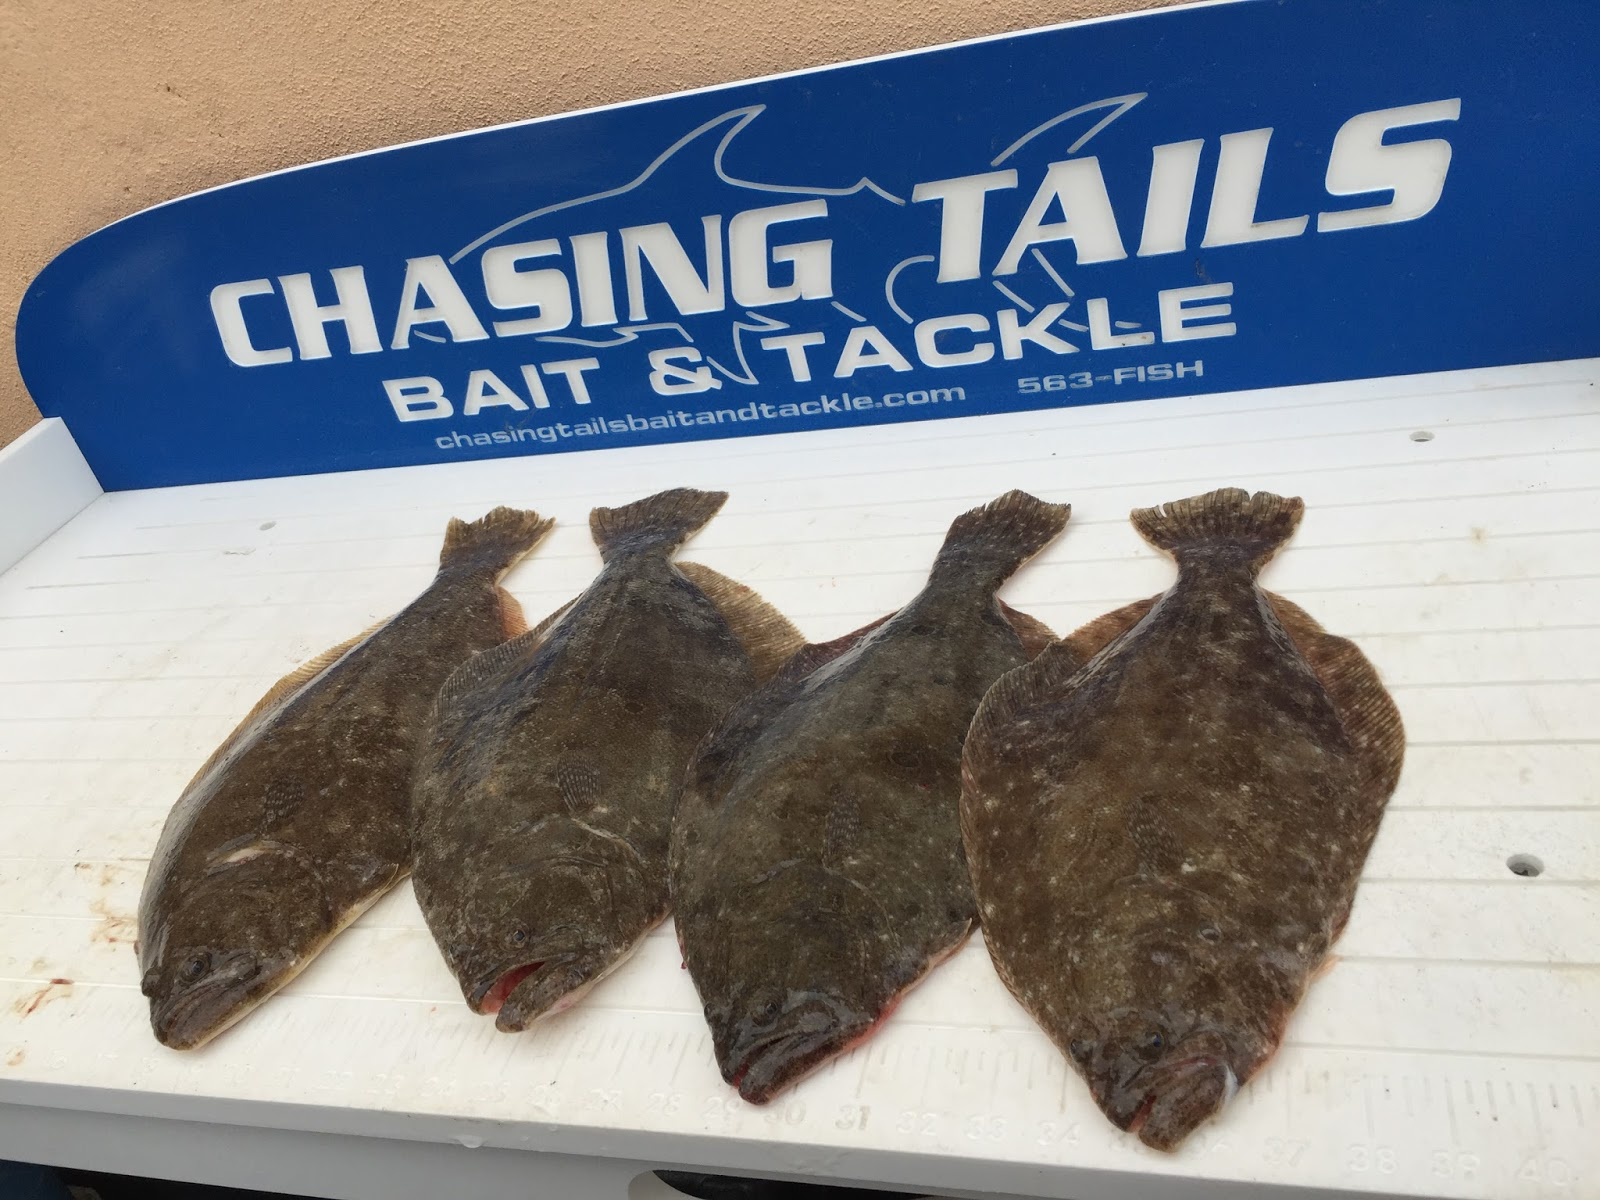 Keeper fluke on the inside chasing tails bait tackle for Chasing tails fishing report